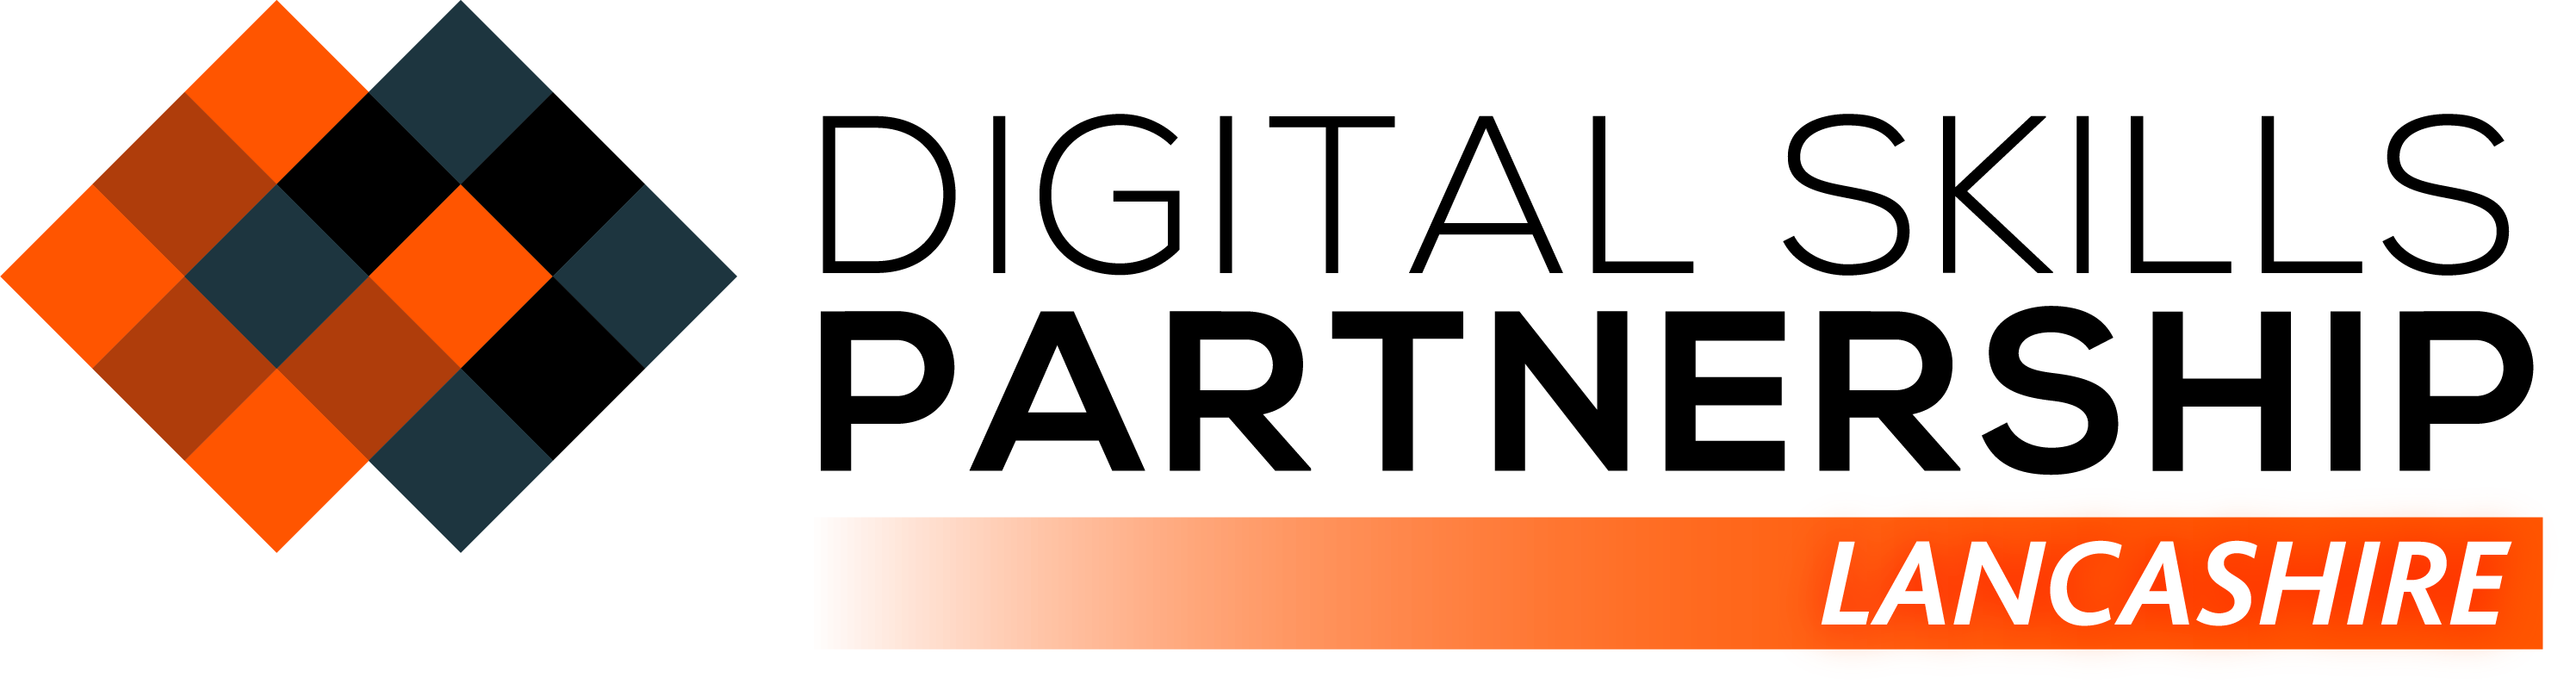 Digital Skills Partnership logo